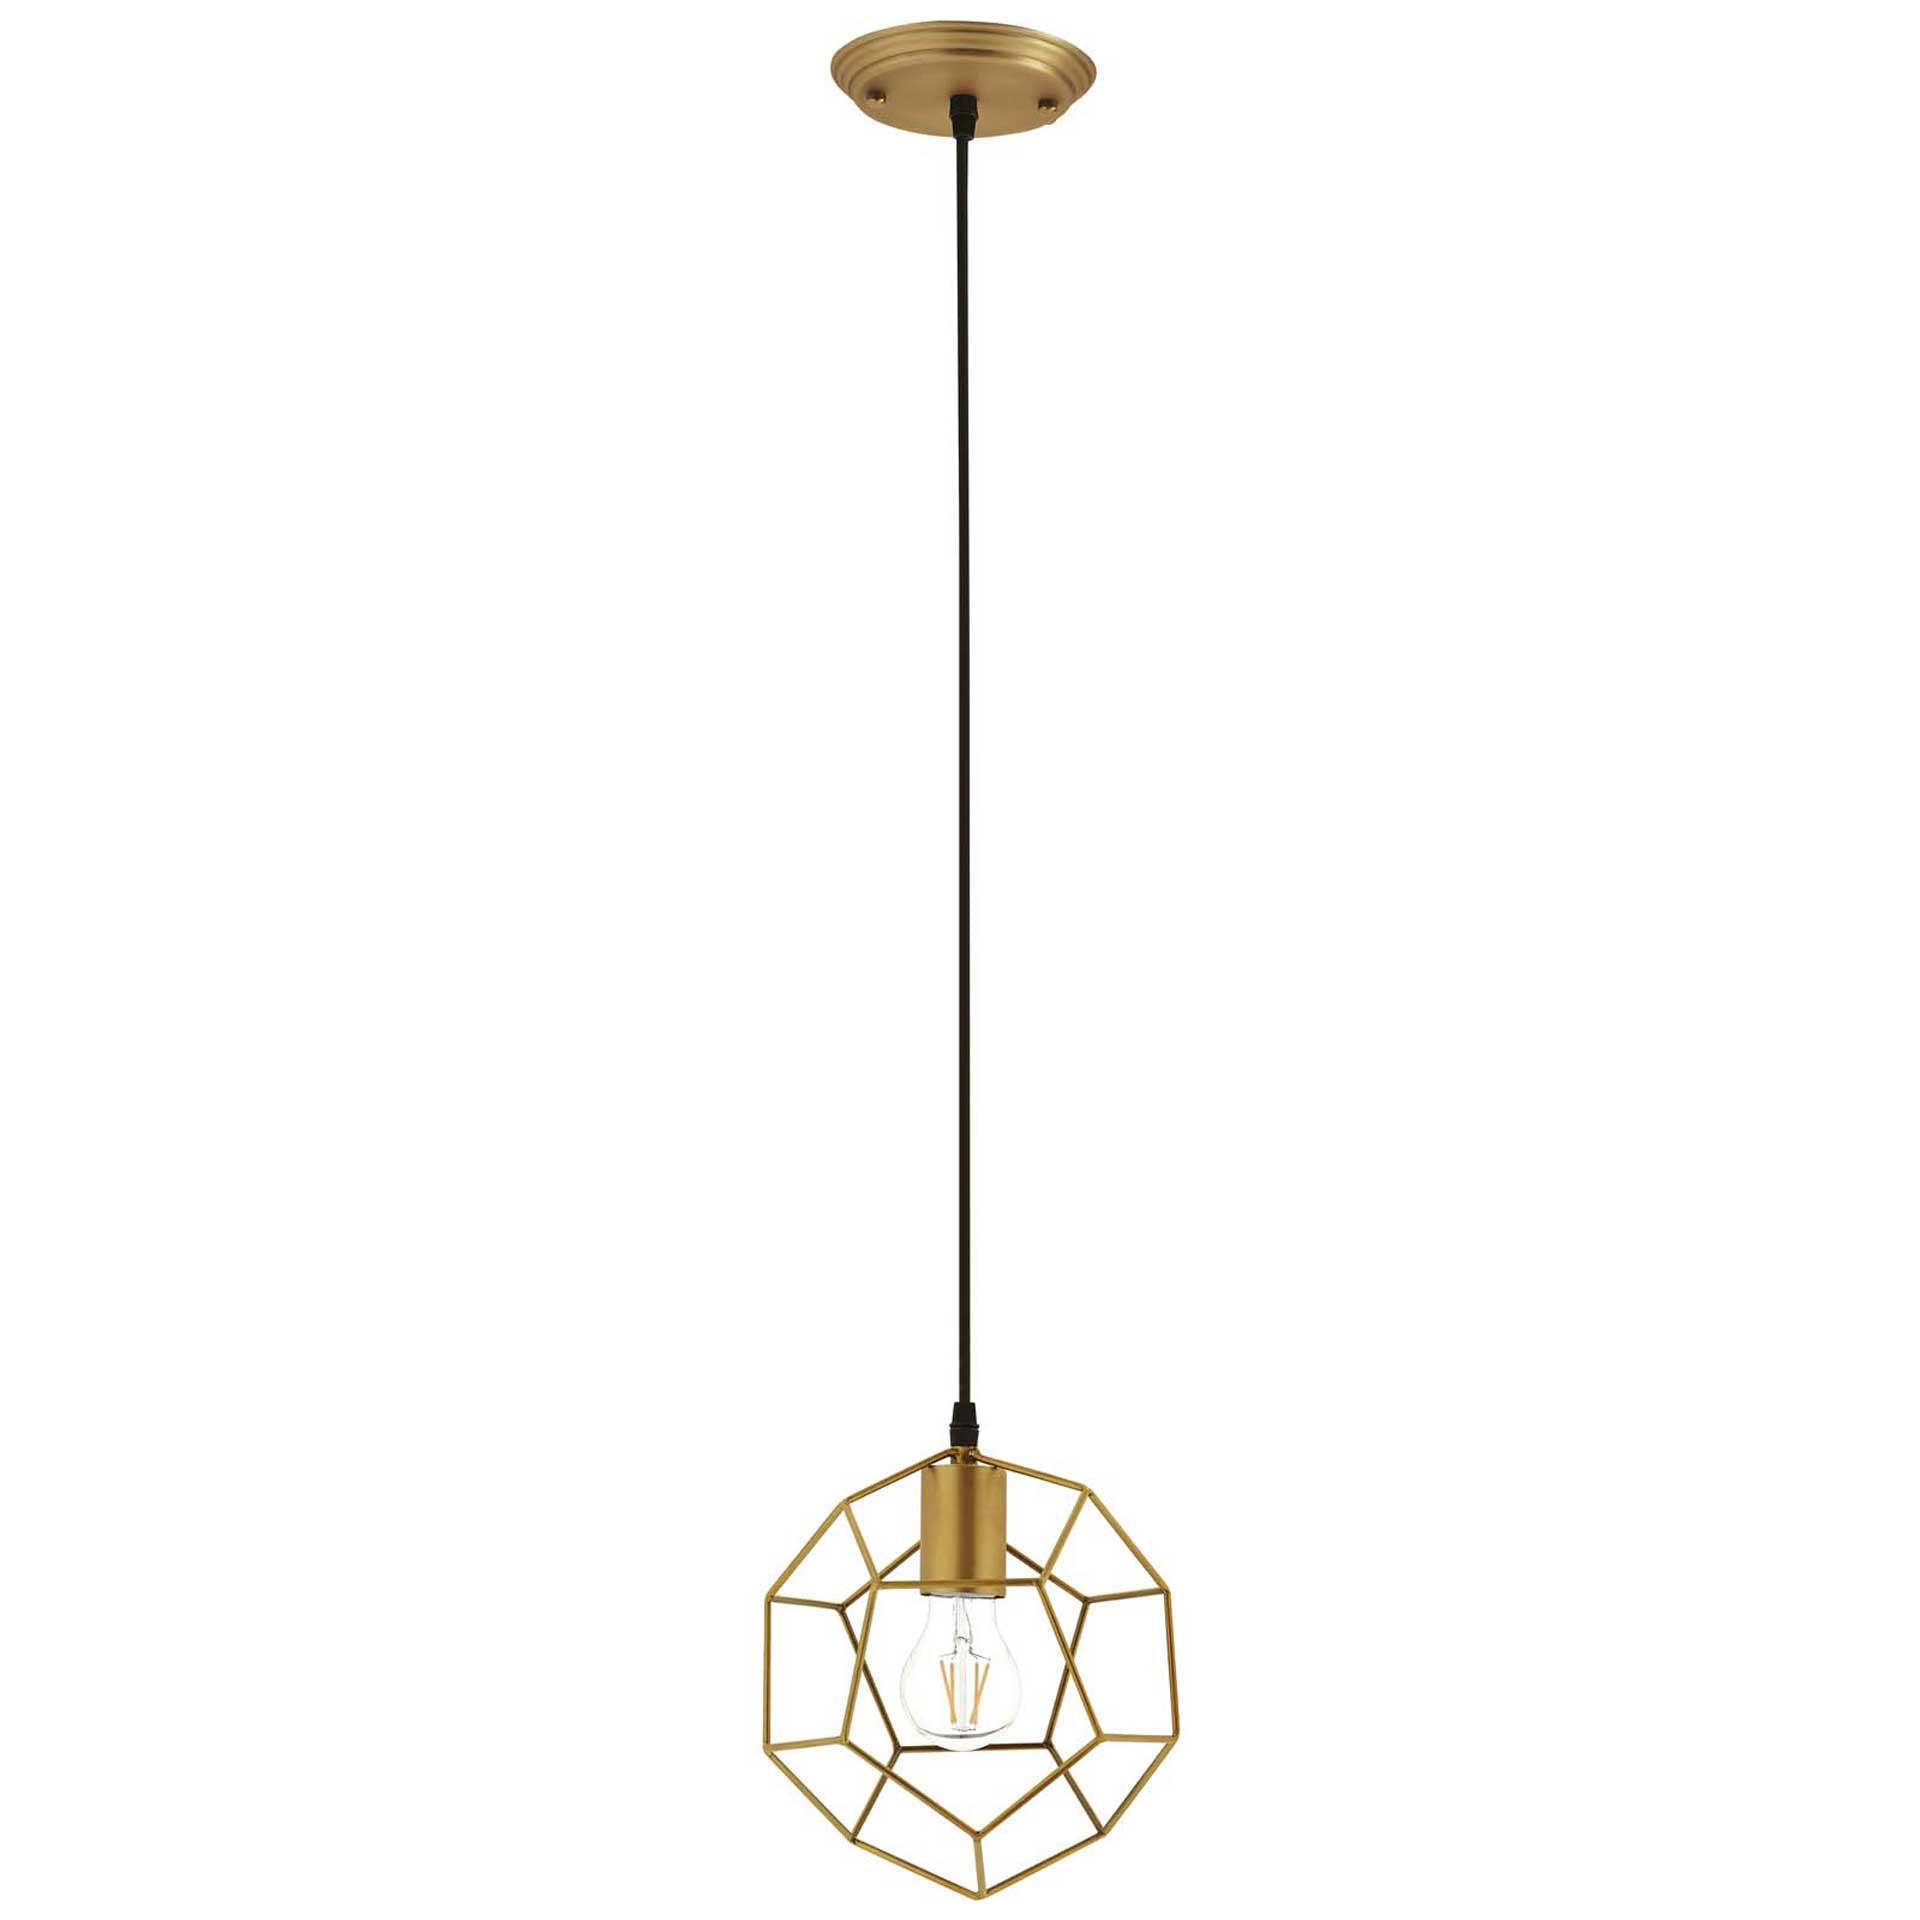 Pierce Metal Ceiling Fixture Gold